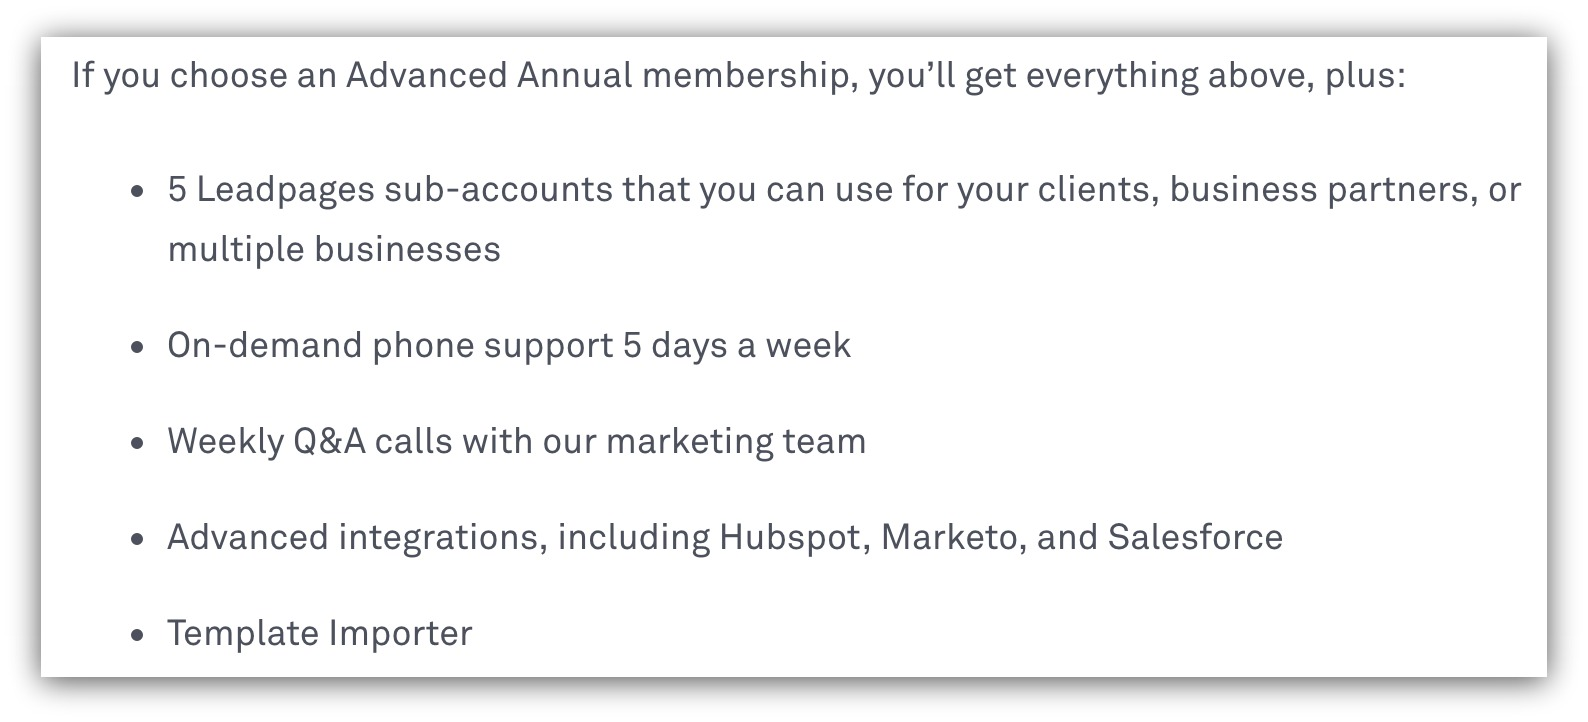 Screenshot showing benefits a user will get for getting a specific membership level